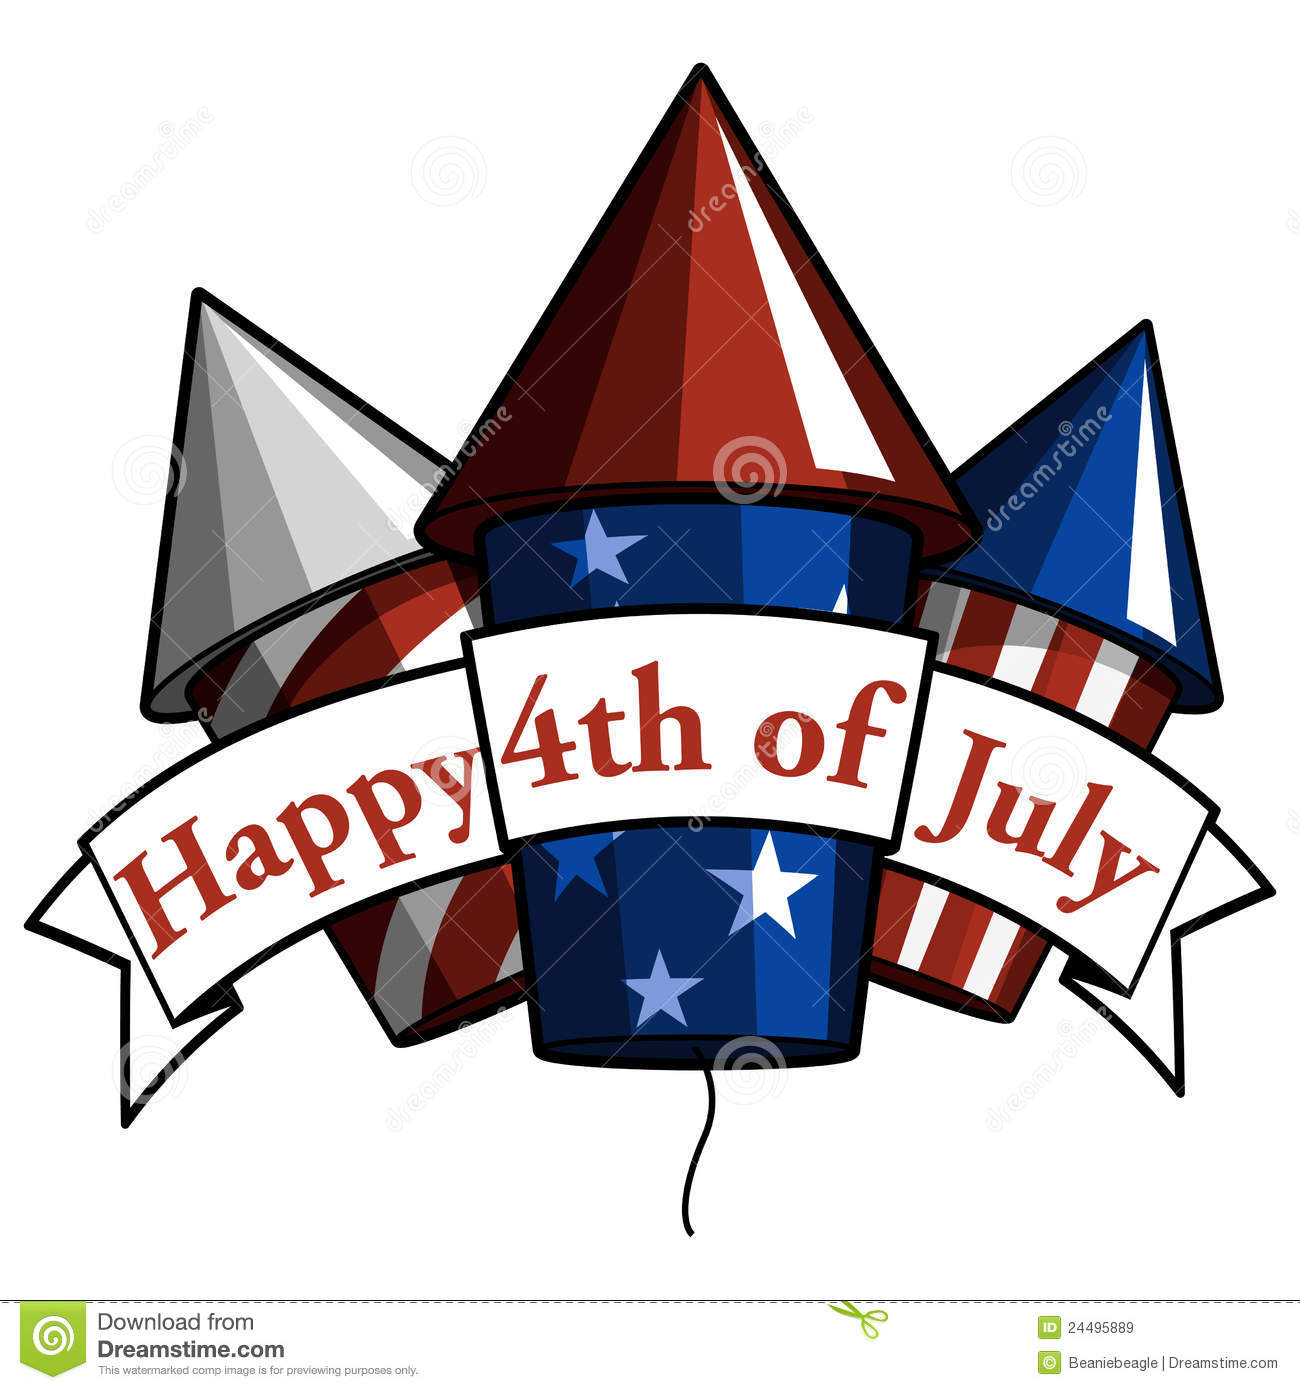 Clipart for july 4th sign board.